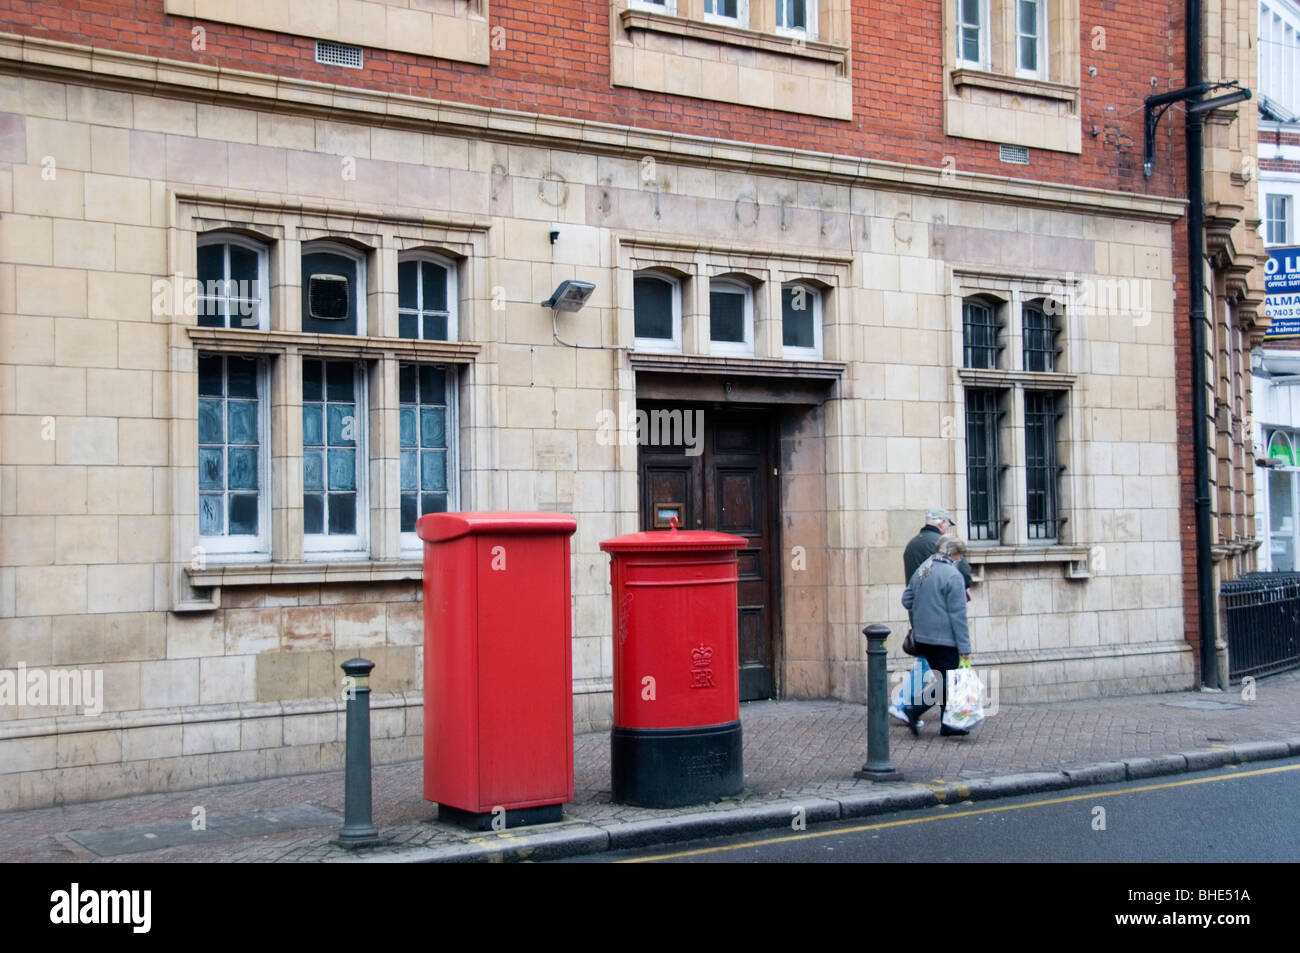 The closed East Street Post Office in Bromley, South London, England - Stock Image